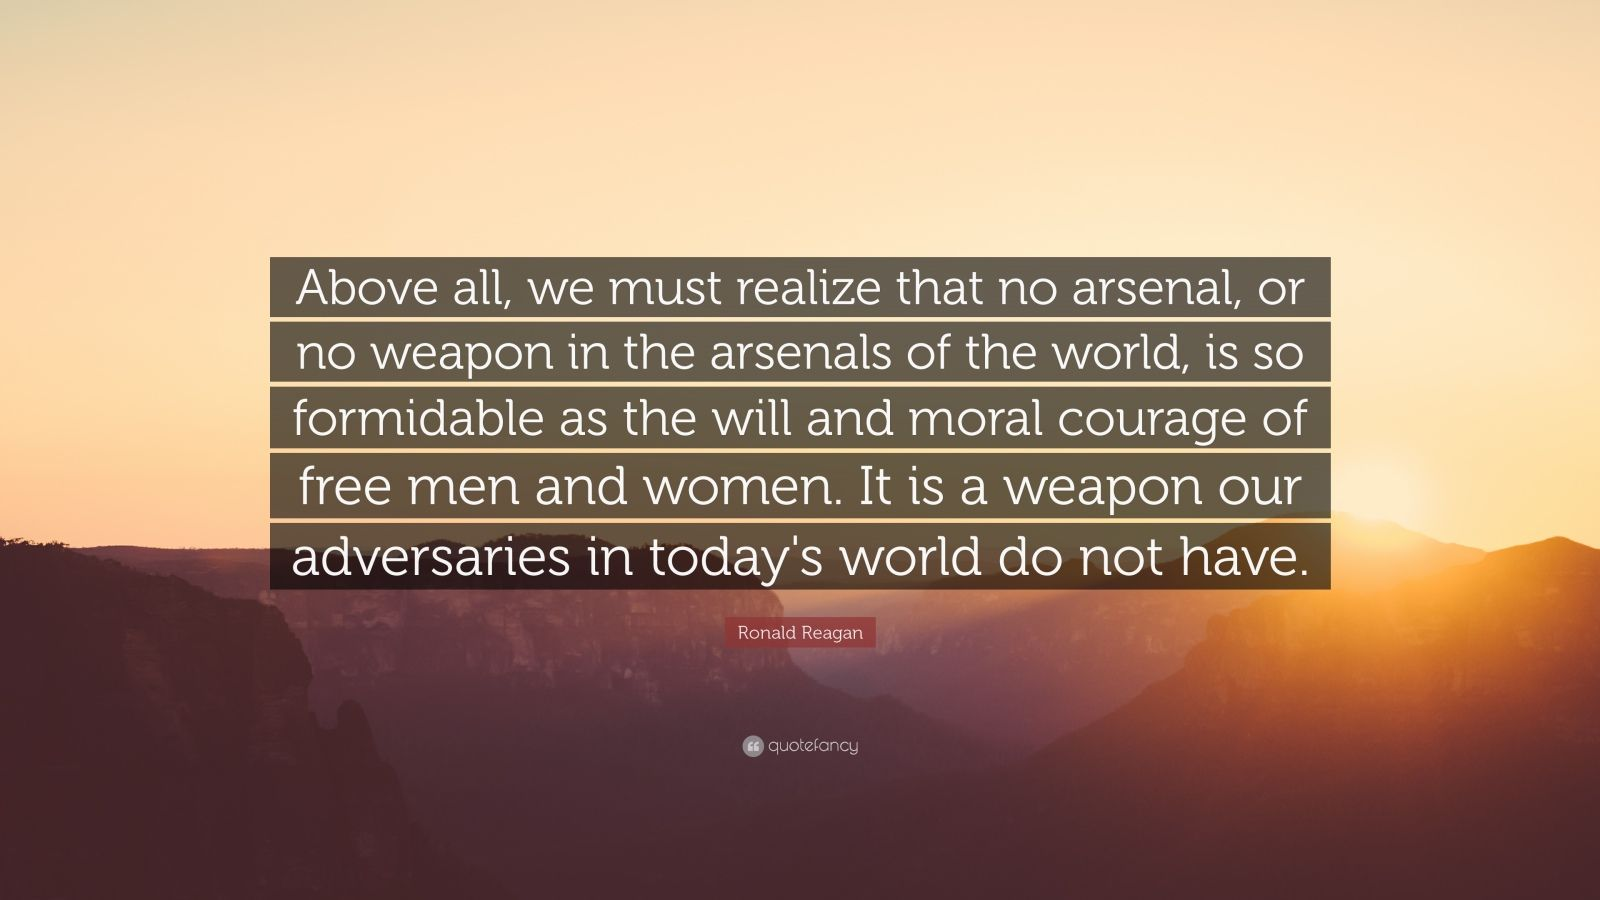 """Ronald Reagan Quote: """"Above all, we must realize that no arsenal, or no weapon in the arsenals of the world, is so formidable as the will and moral courage of free men and women. It is a weapon our adversaries in today's world do not have."""""""